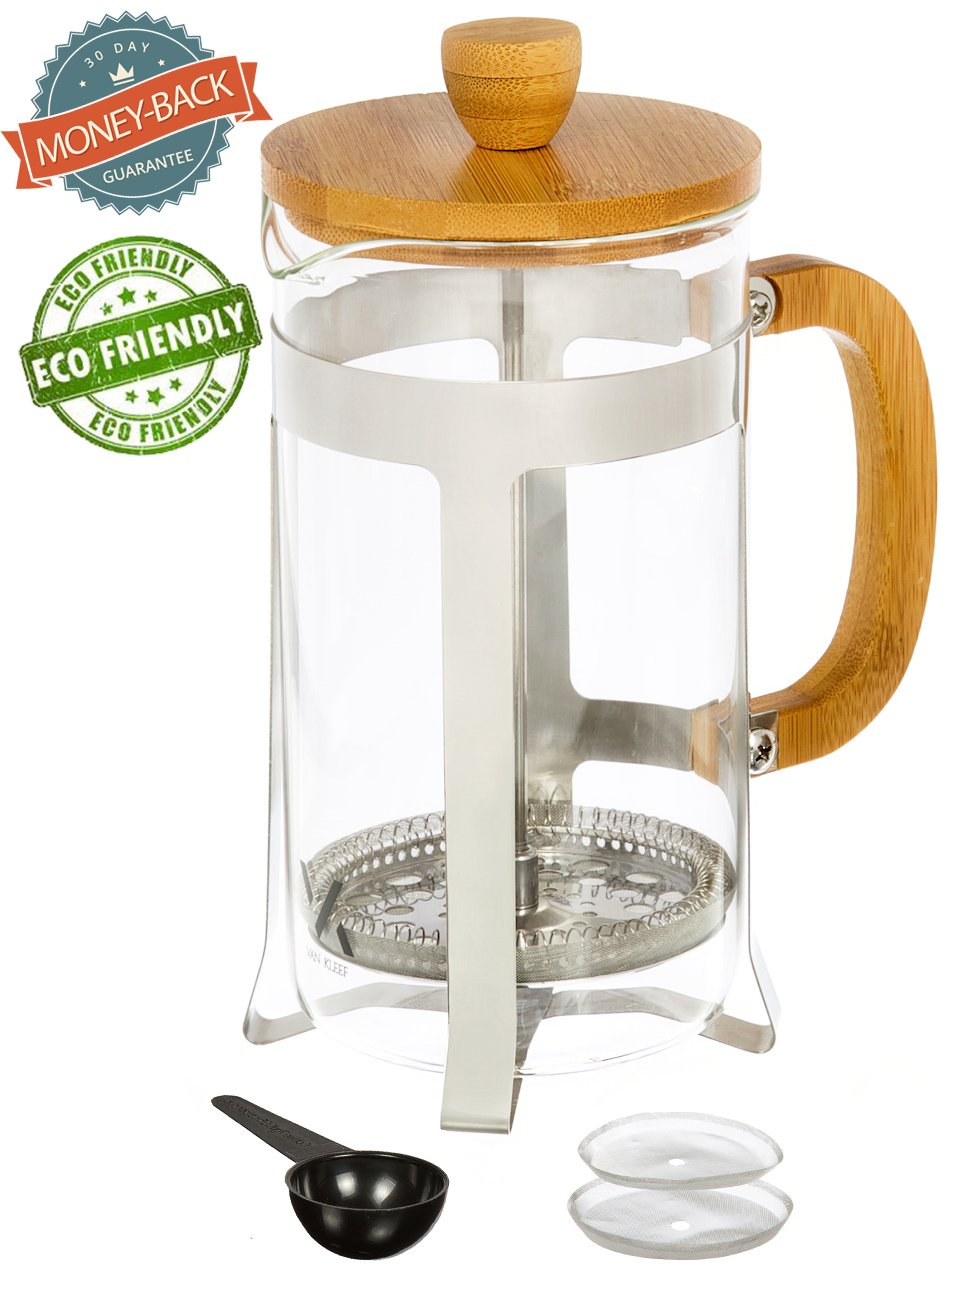 Urban Galley French Press Coffee Espresso Tea Maker with Stainless Steel Plunger, Pyrex Glass and Bamboo Wood (1000ml/34oz.)